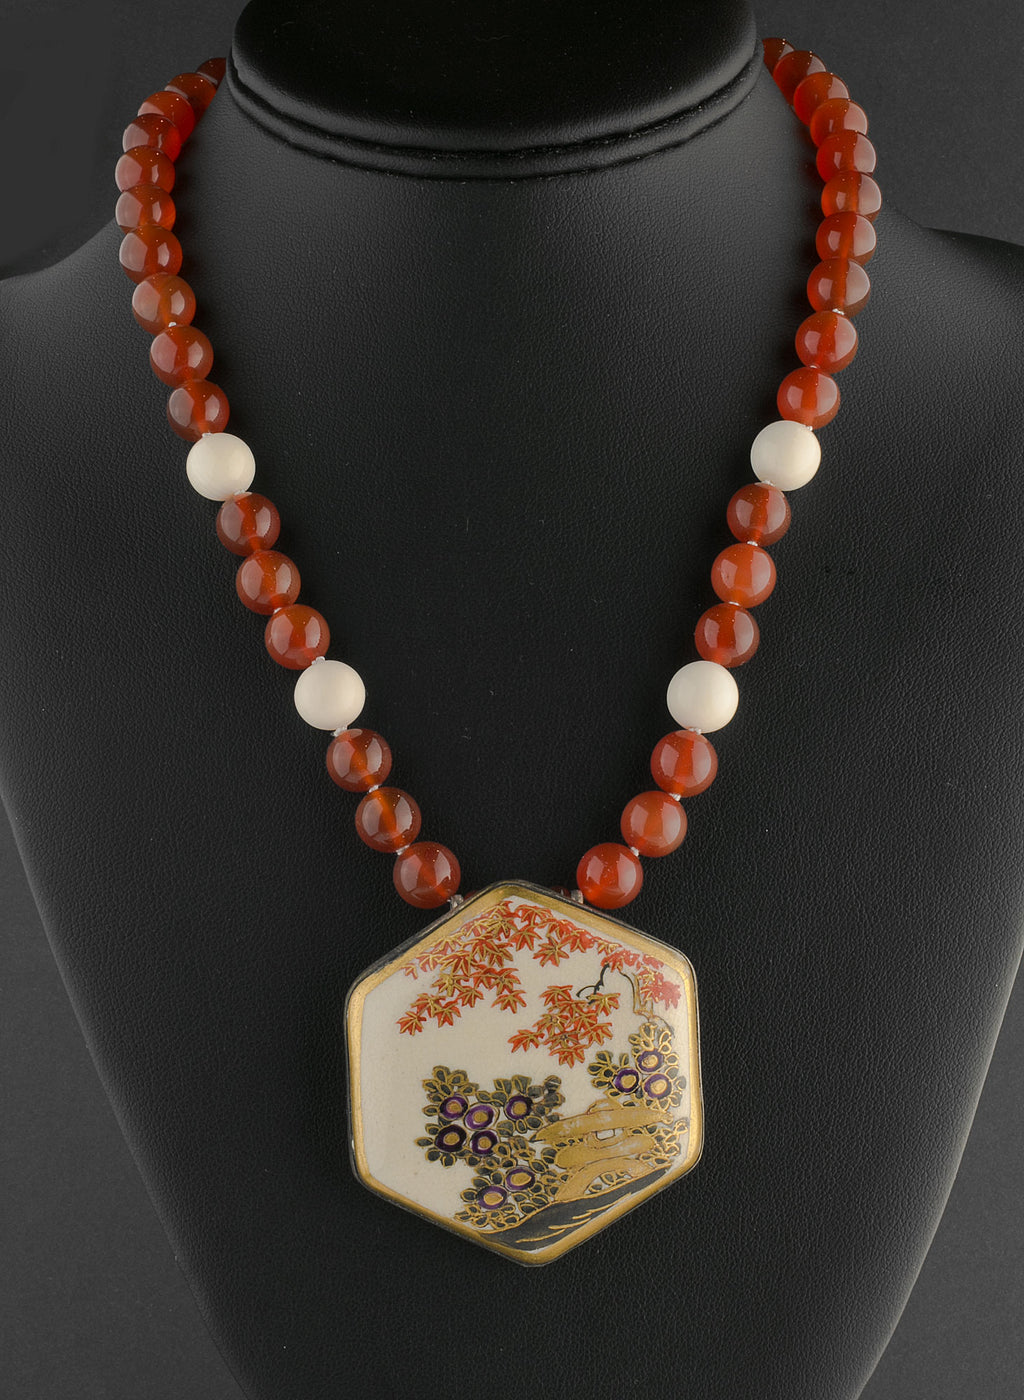 Antique Japanese Satsuma silver pendant necklace with carnelian beads.  nlor829